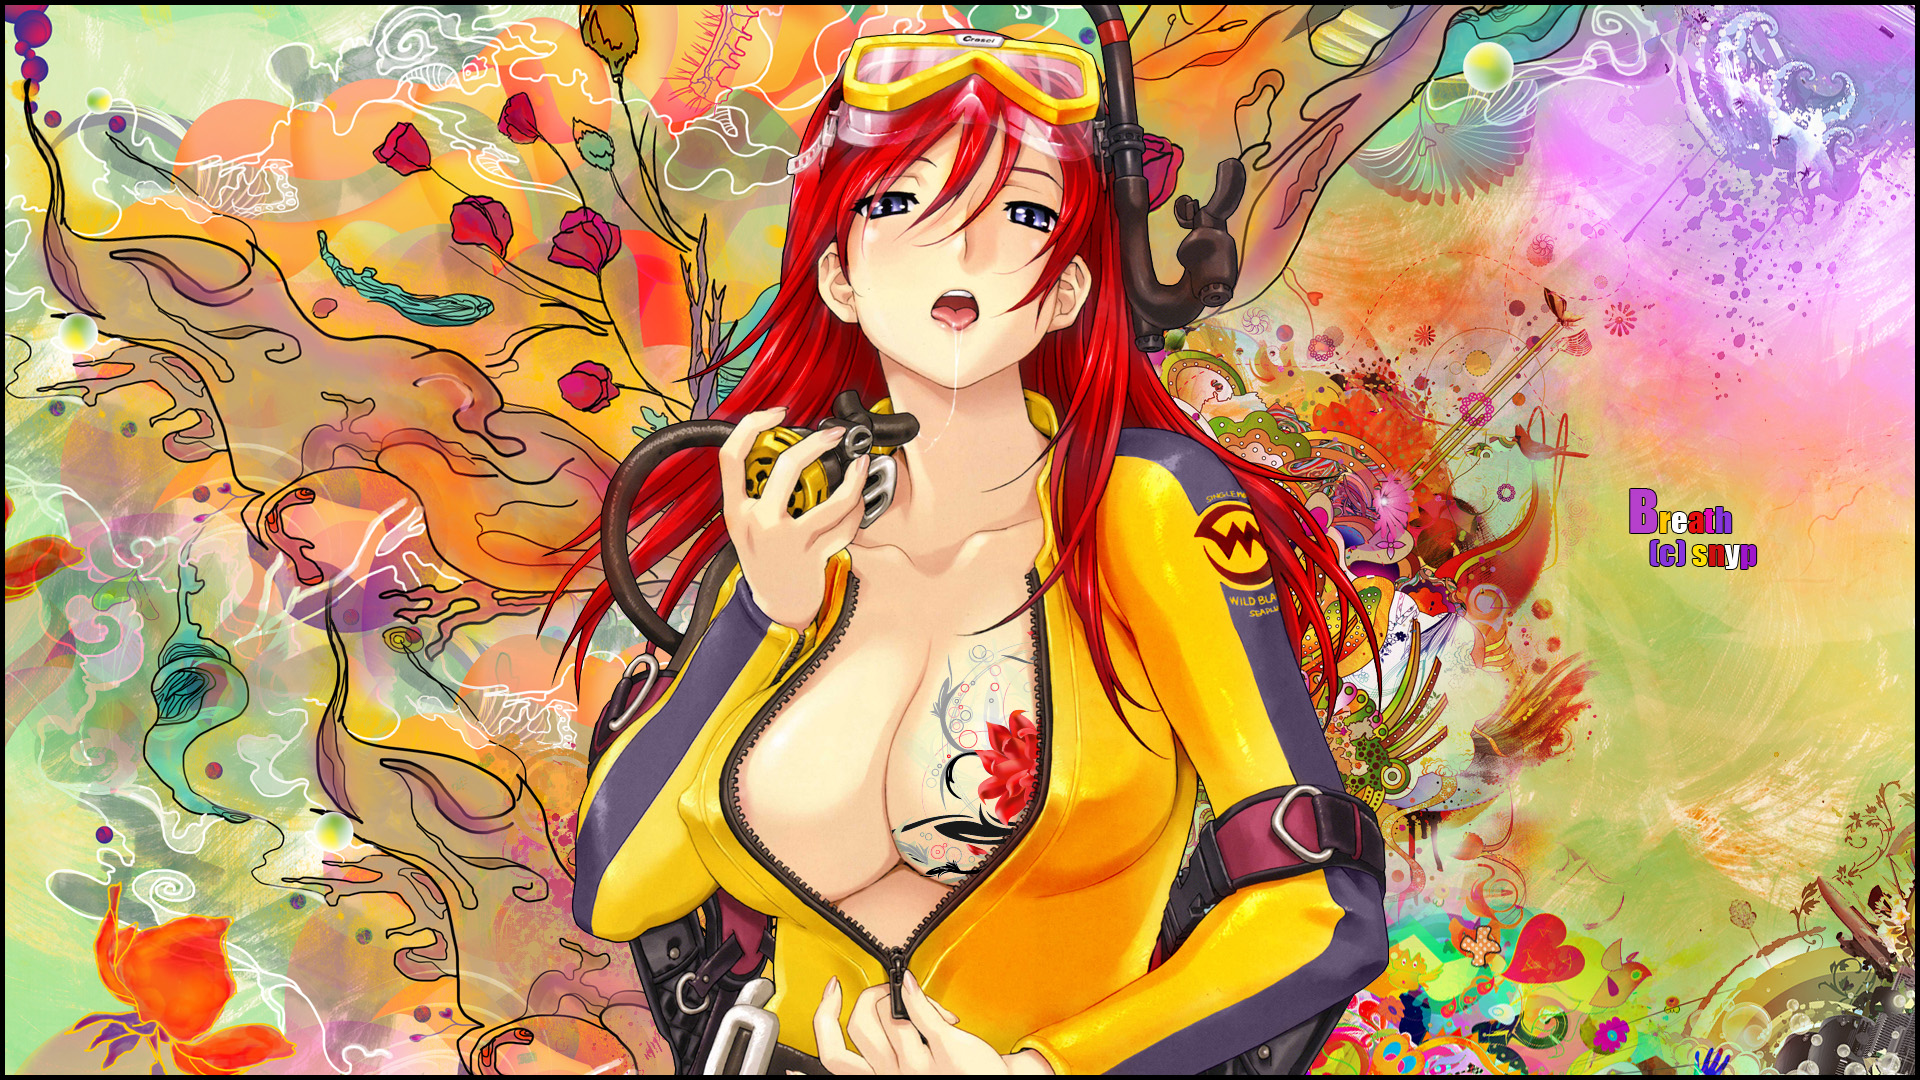 Sexy Anime Girls High Resolution Wallpaper 02  Imagez Only-2349